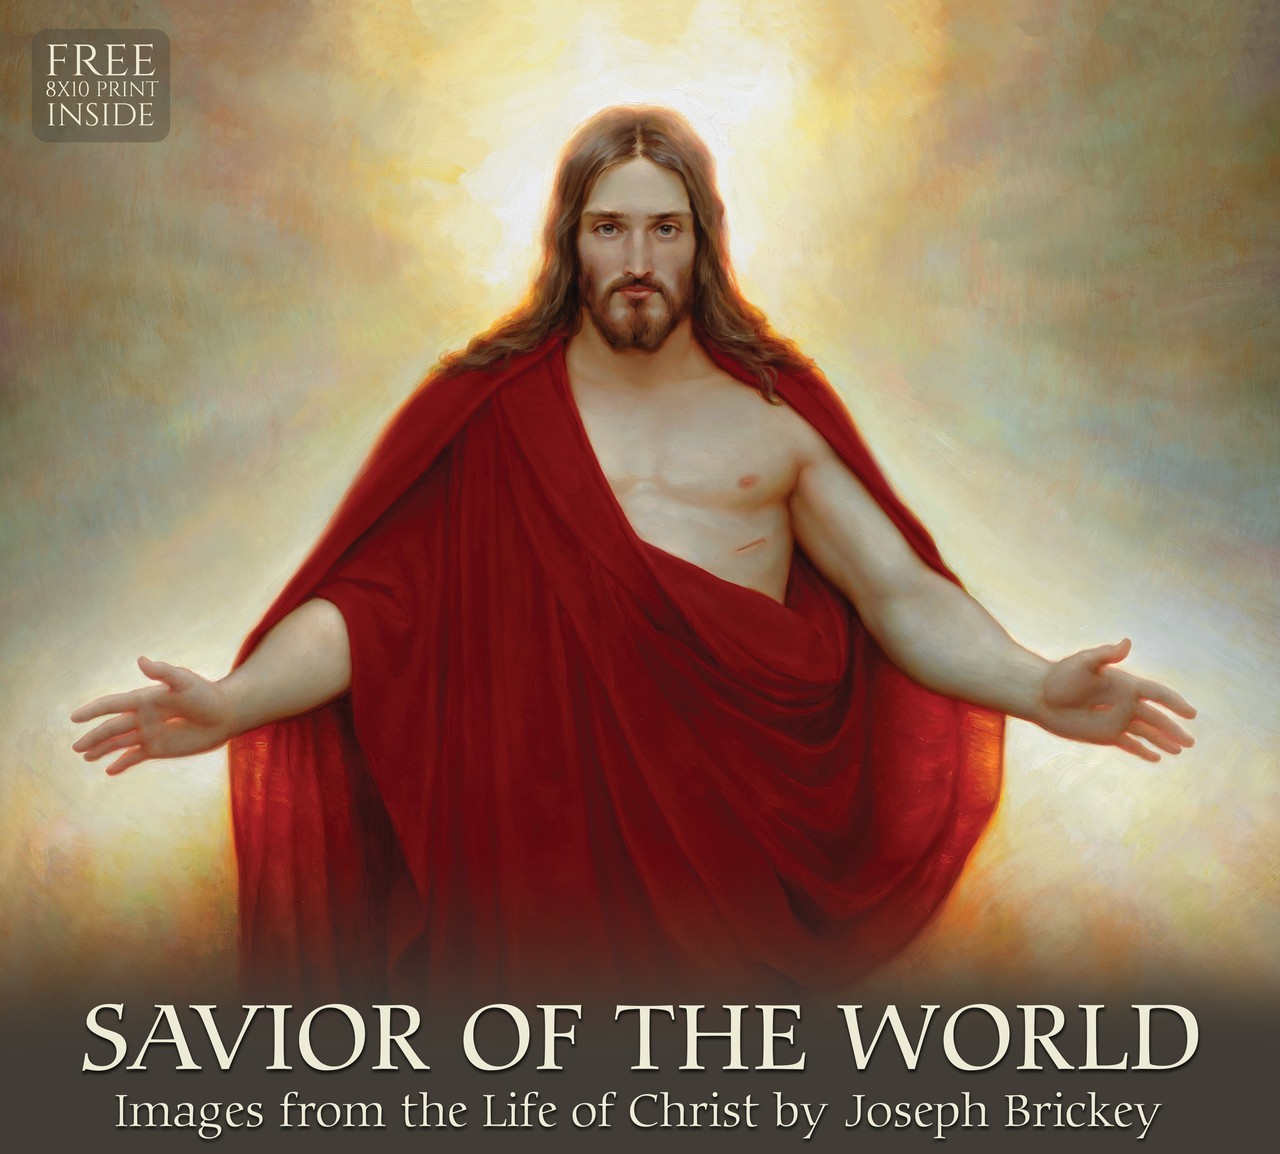 2019 Savior of the World Calendar - Joseph Brickey